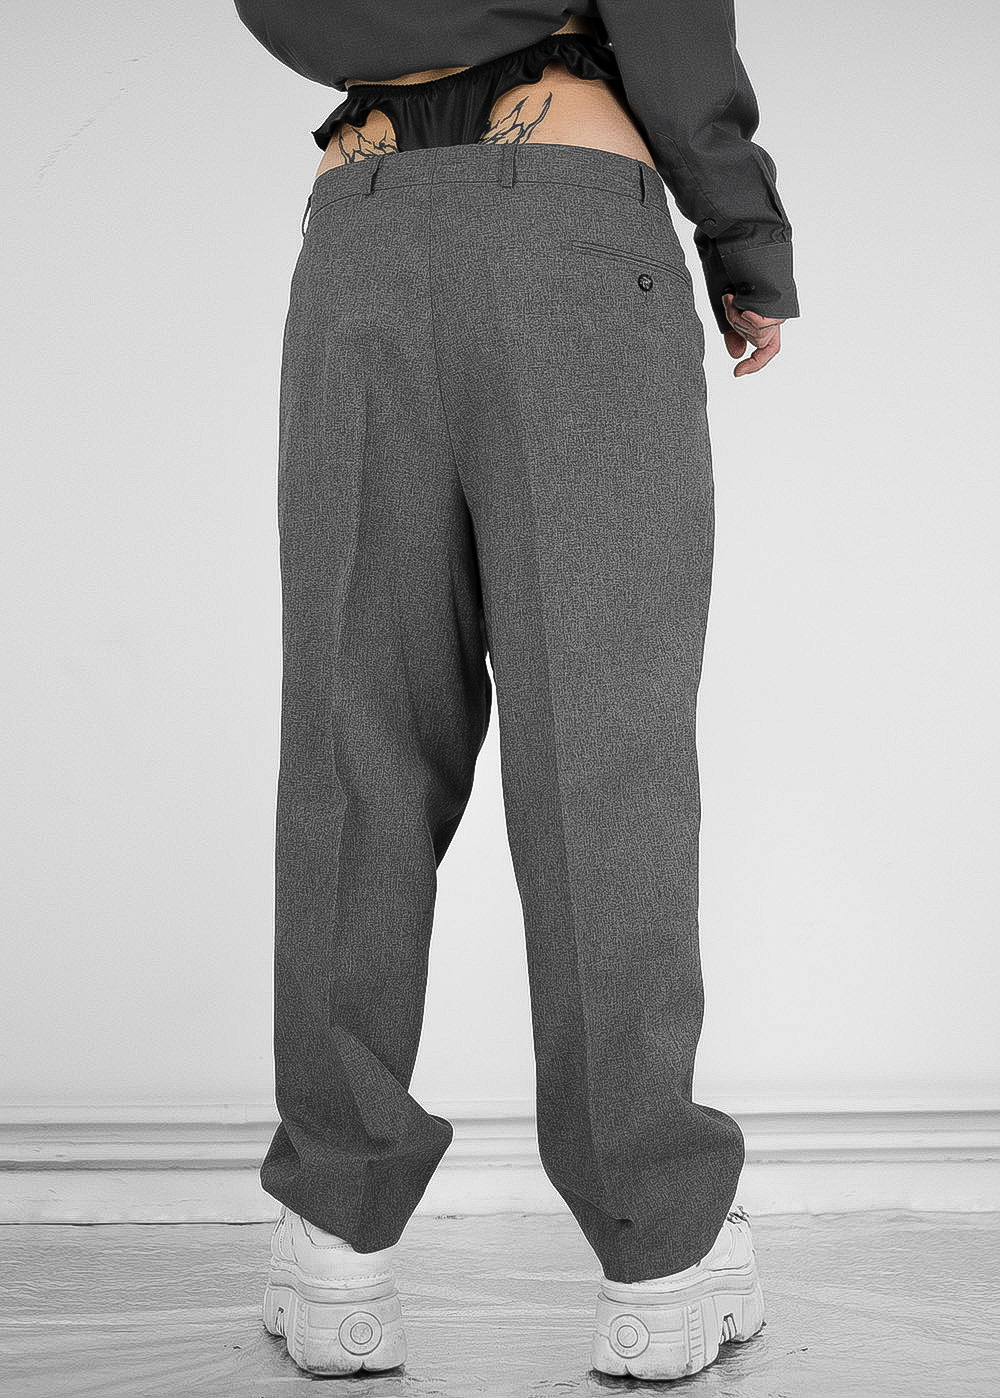 Heather Grey Pants 36